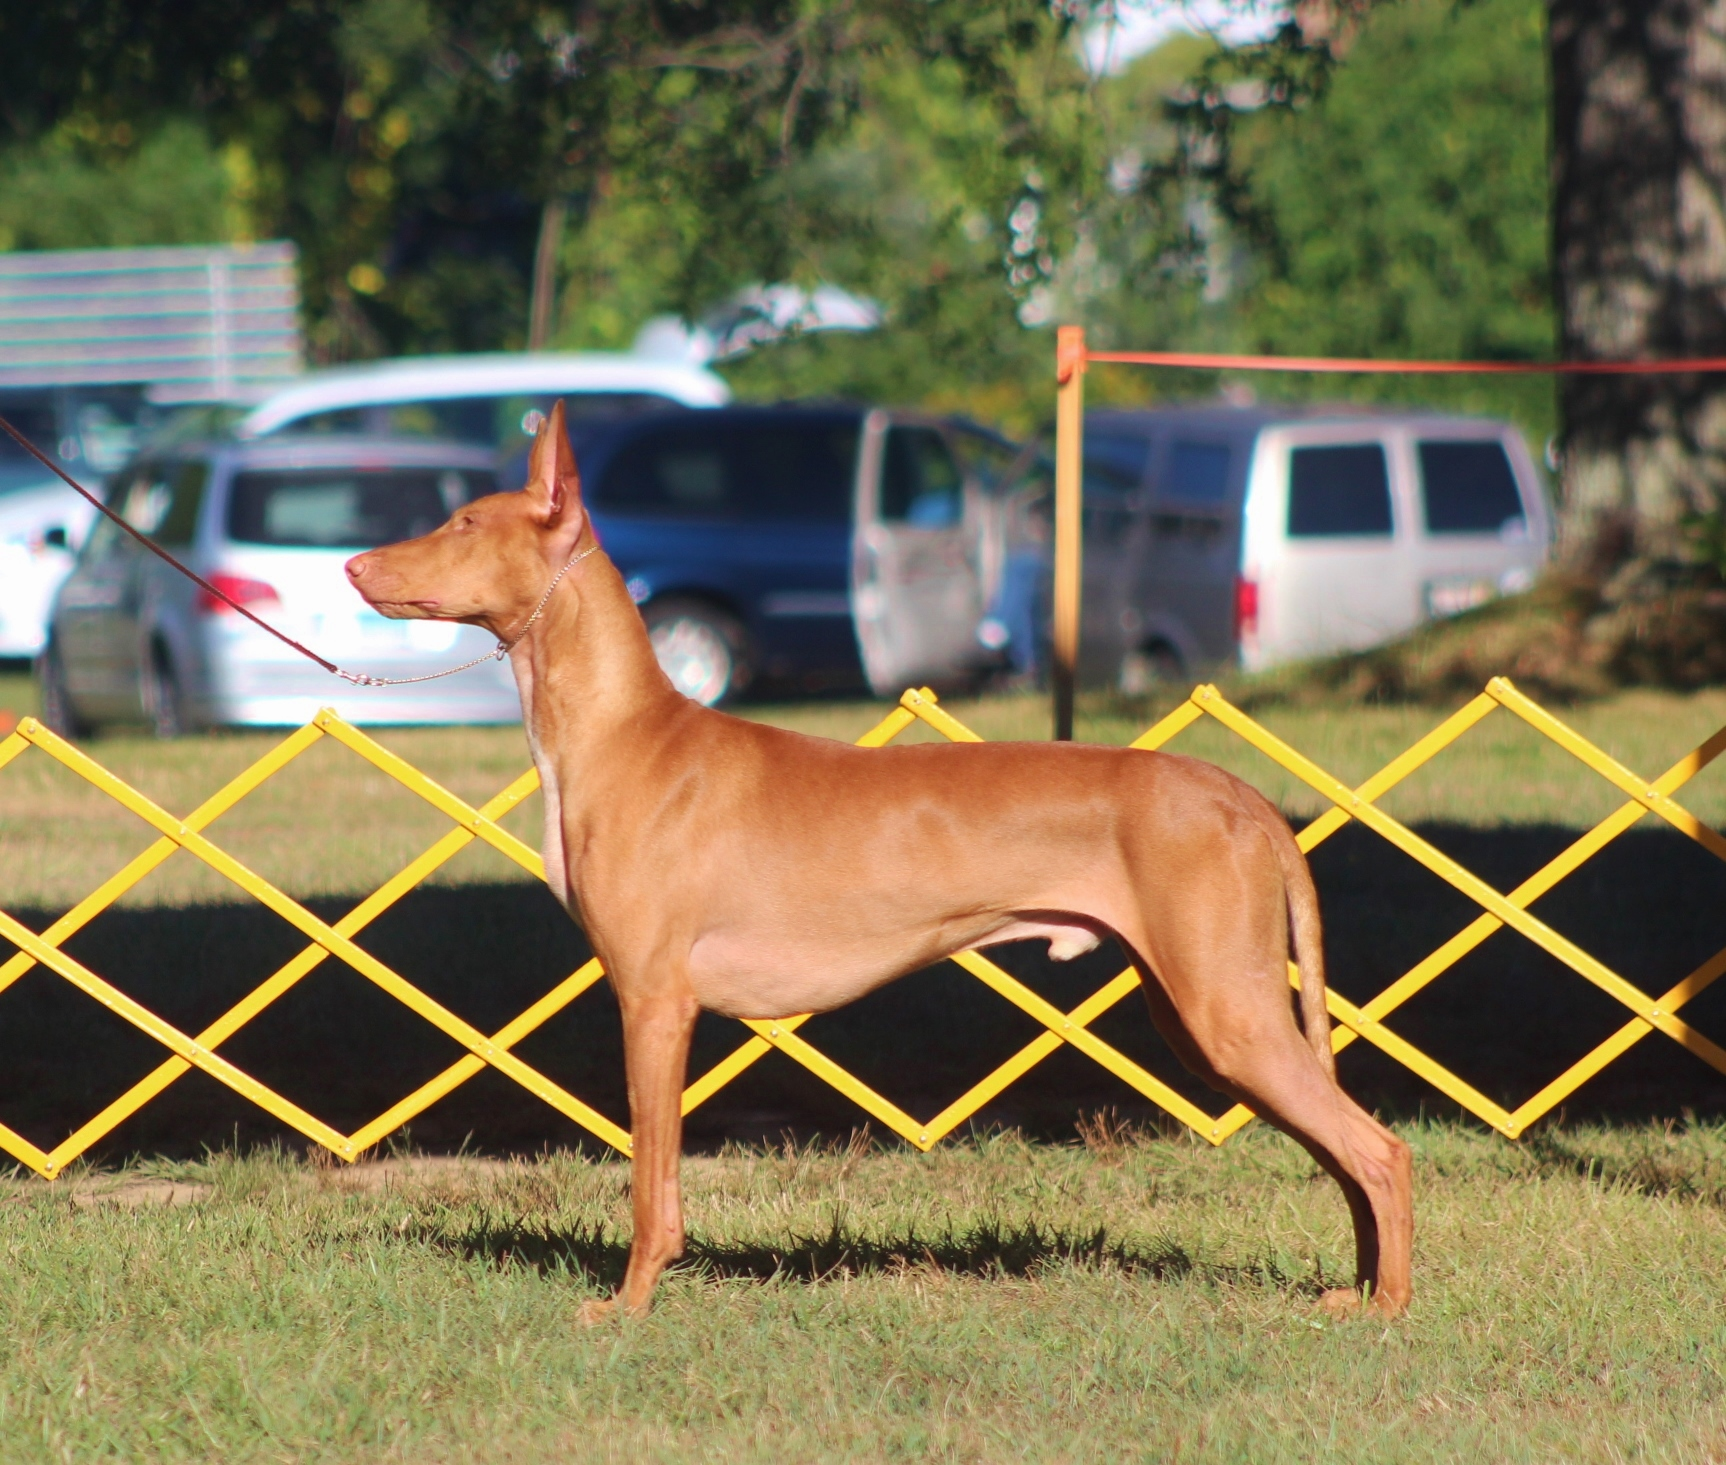 Storm going Winners Dog with a 5 point major at the PHCA National Specialty 2014, owner breeder handled. Photo: Emelie Arwinge